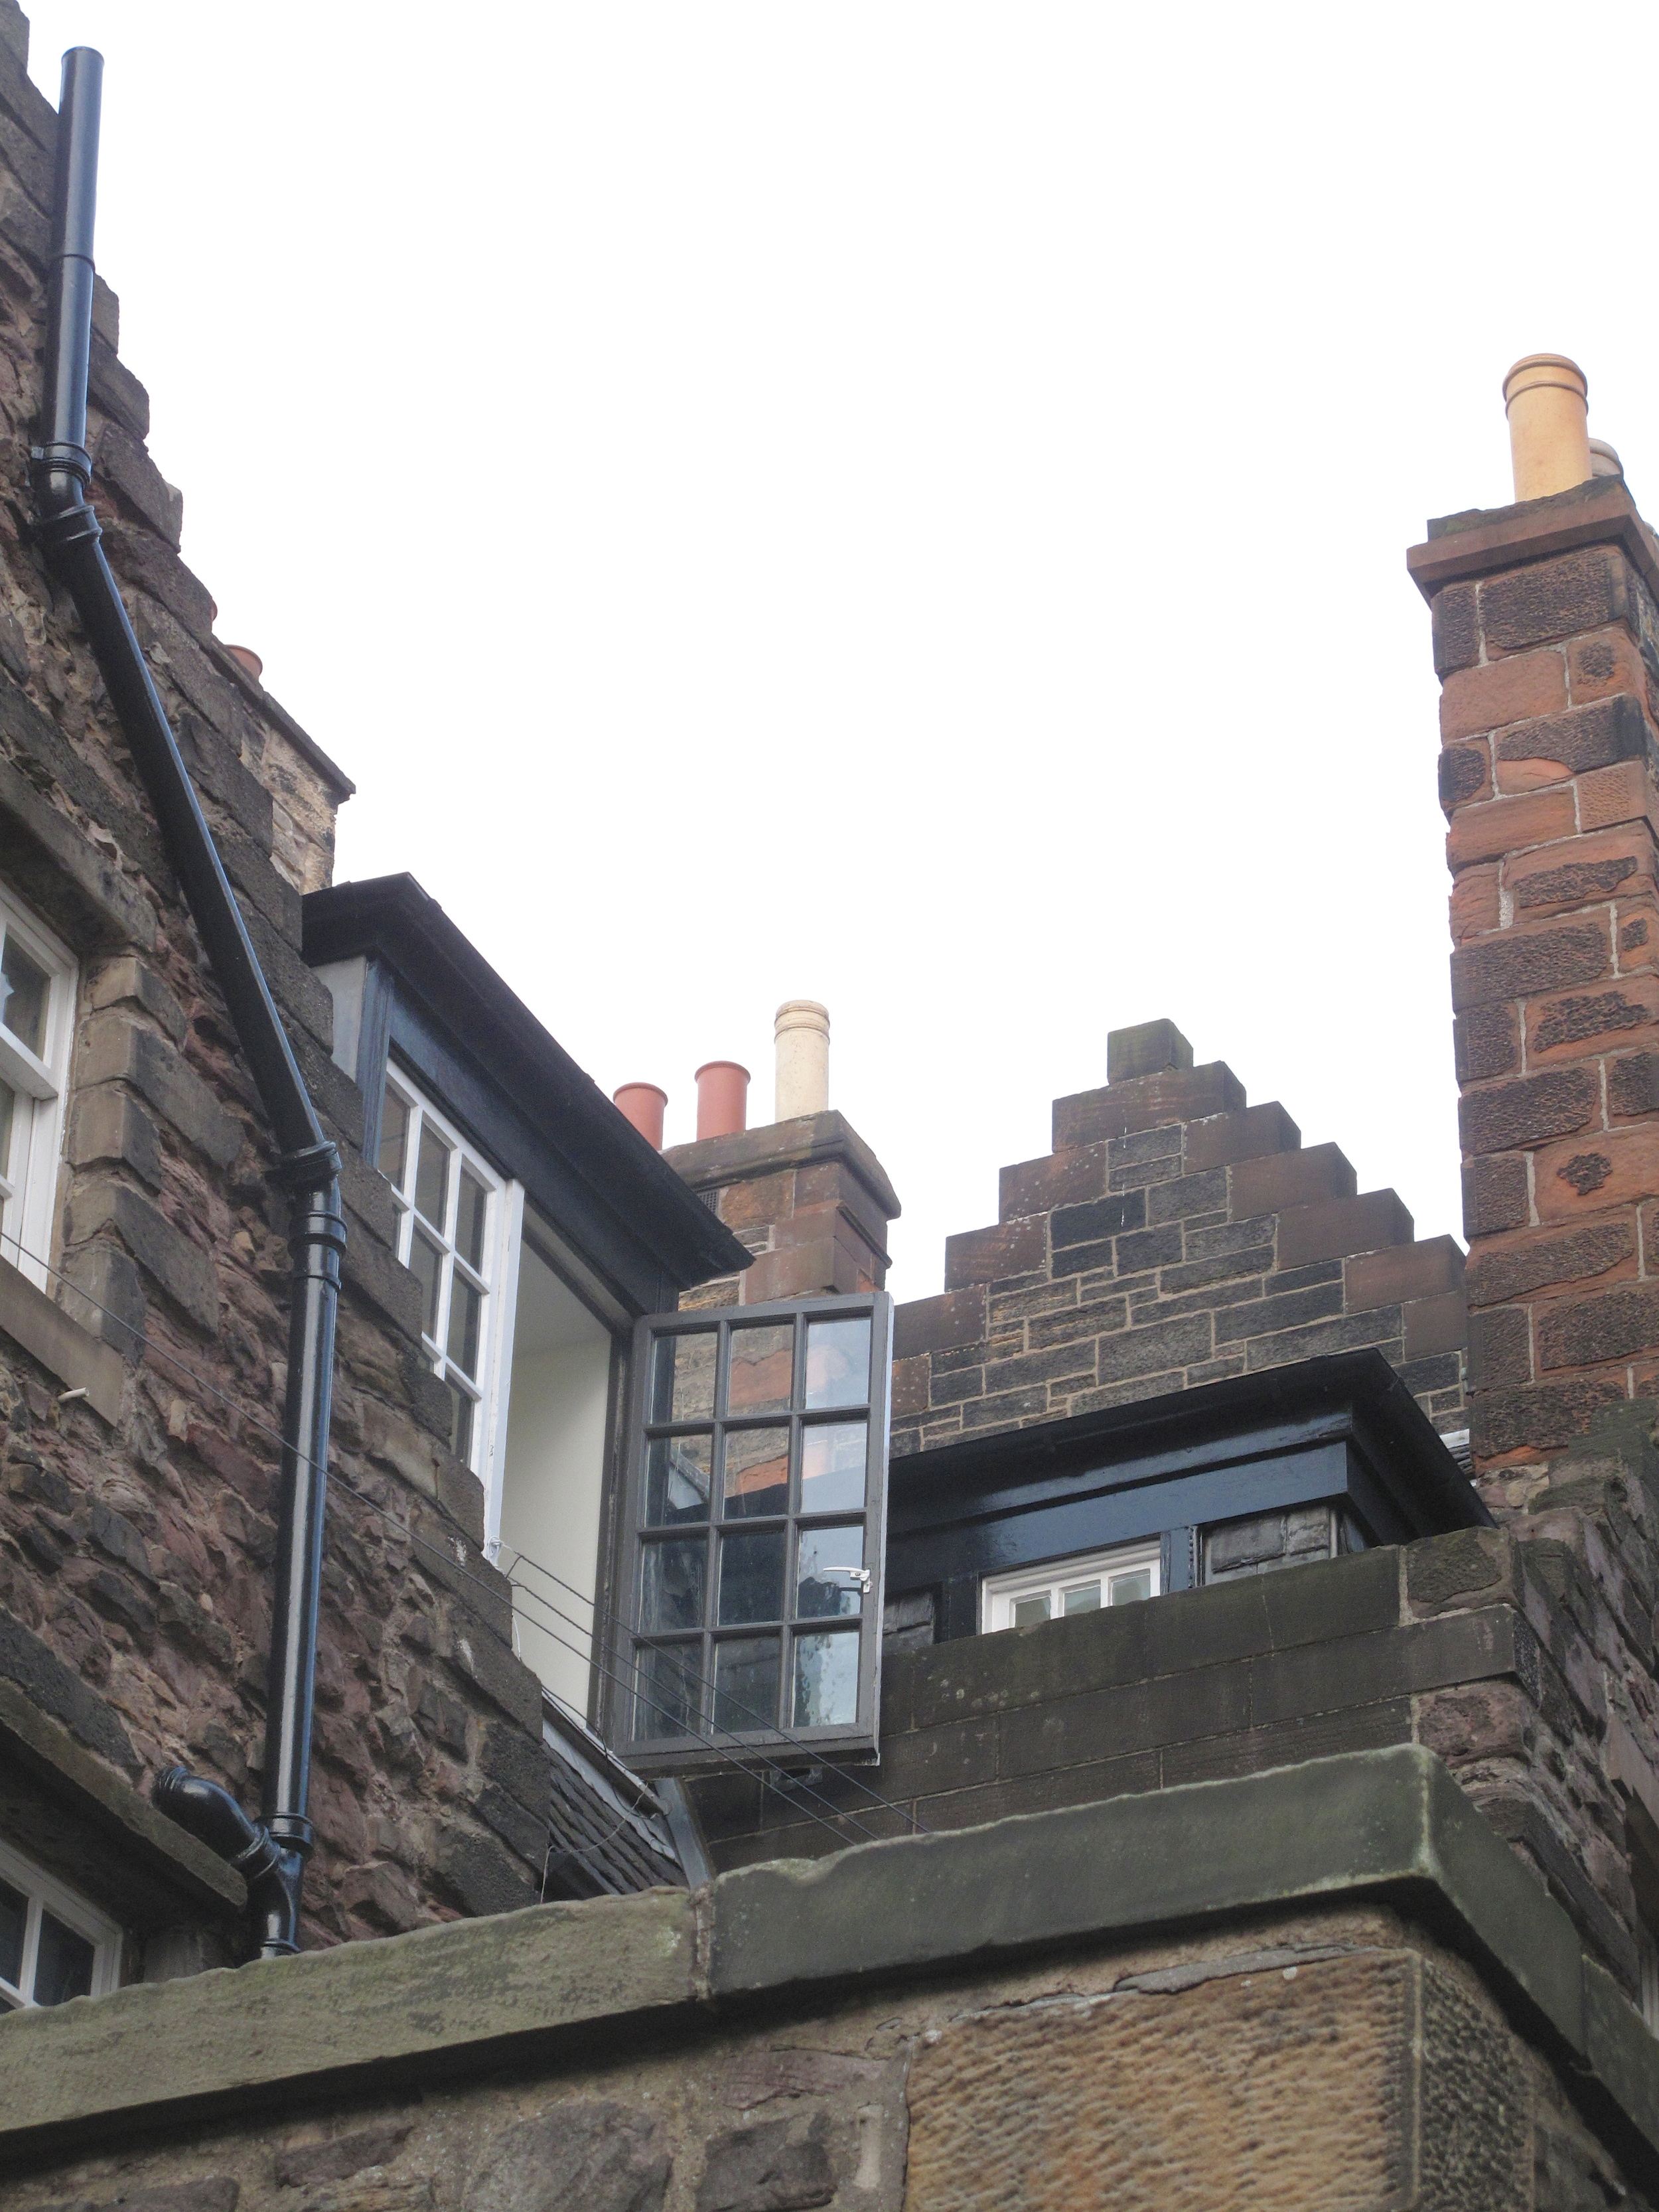 Rooftops of houses and chimneys in Castle Wynd, Edinburgh.